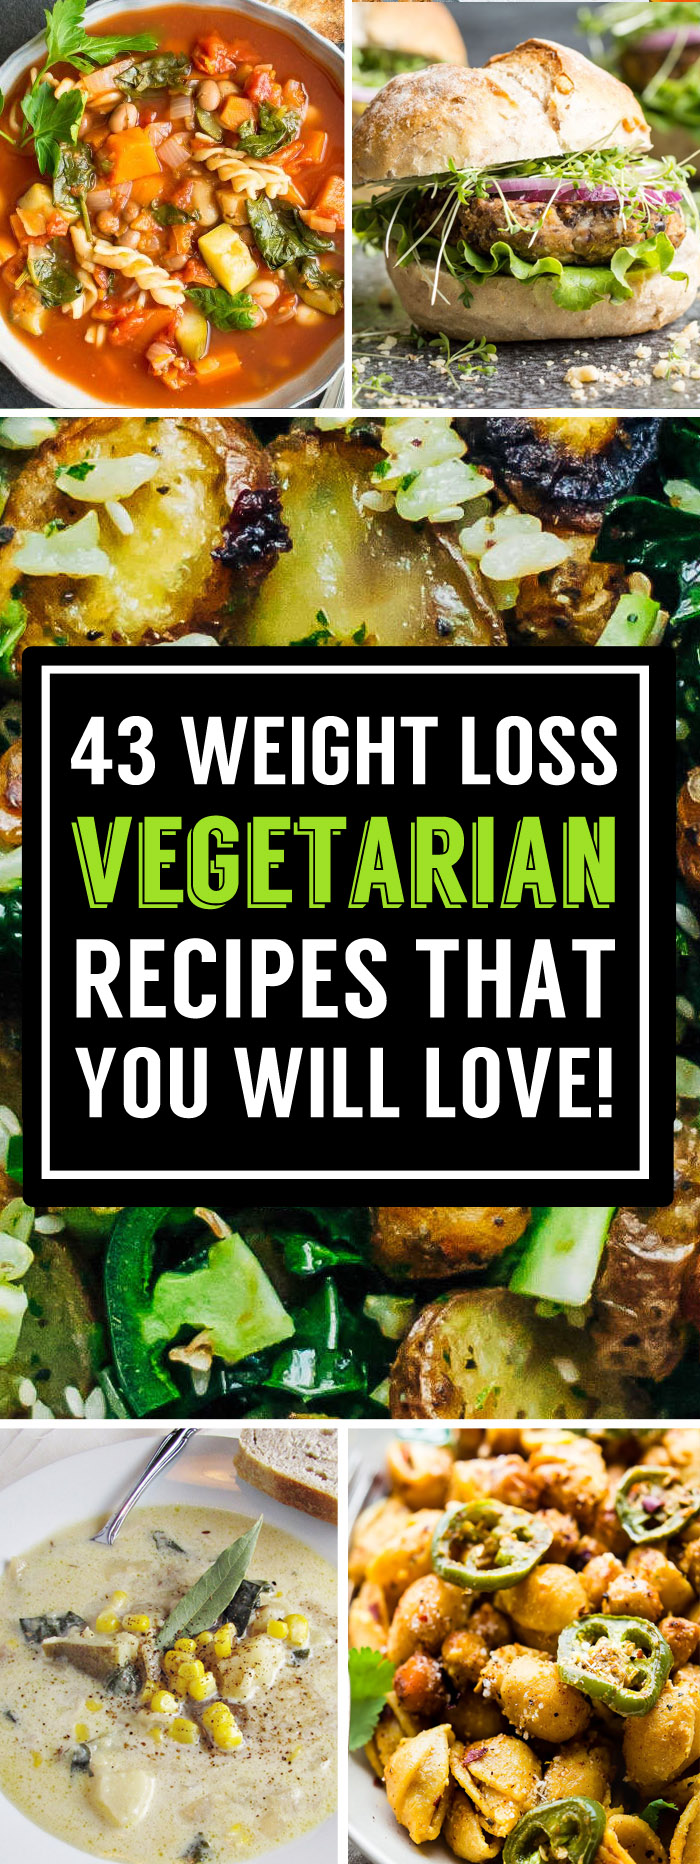 43 Delicious Vegetarian Recipes That Can Help Boost Your ...